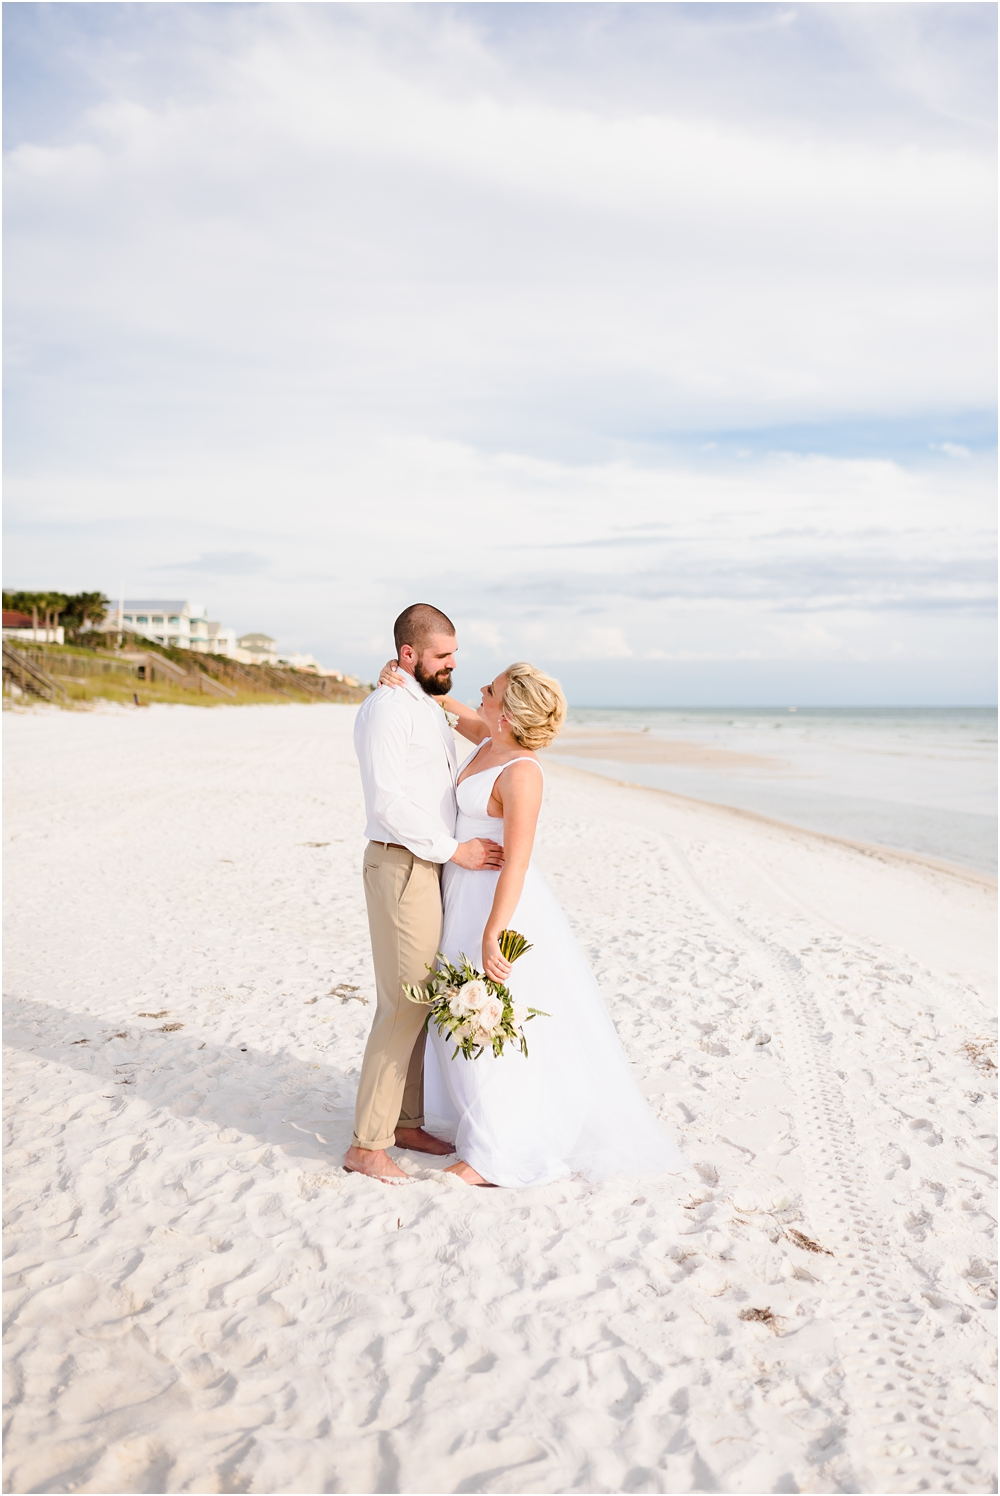 wernert-florida-beach-elopement-wedding-photographer-kiersten-grant-61.jpg